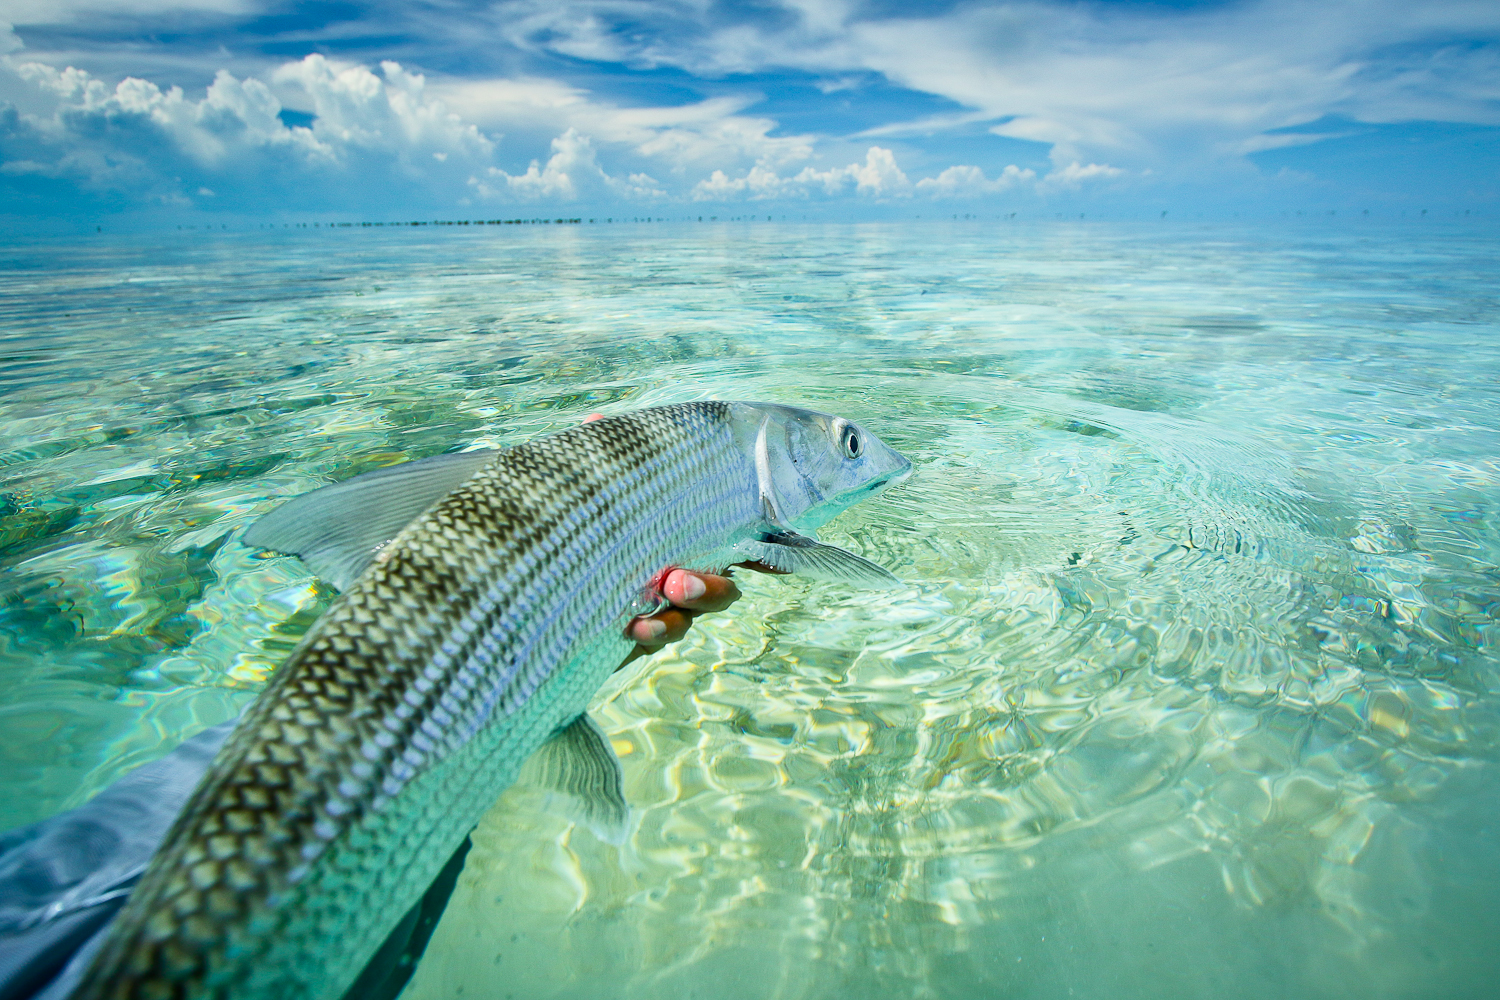 Meaty Bonefish are plentiful